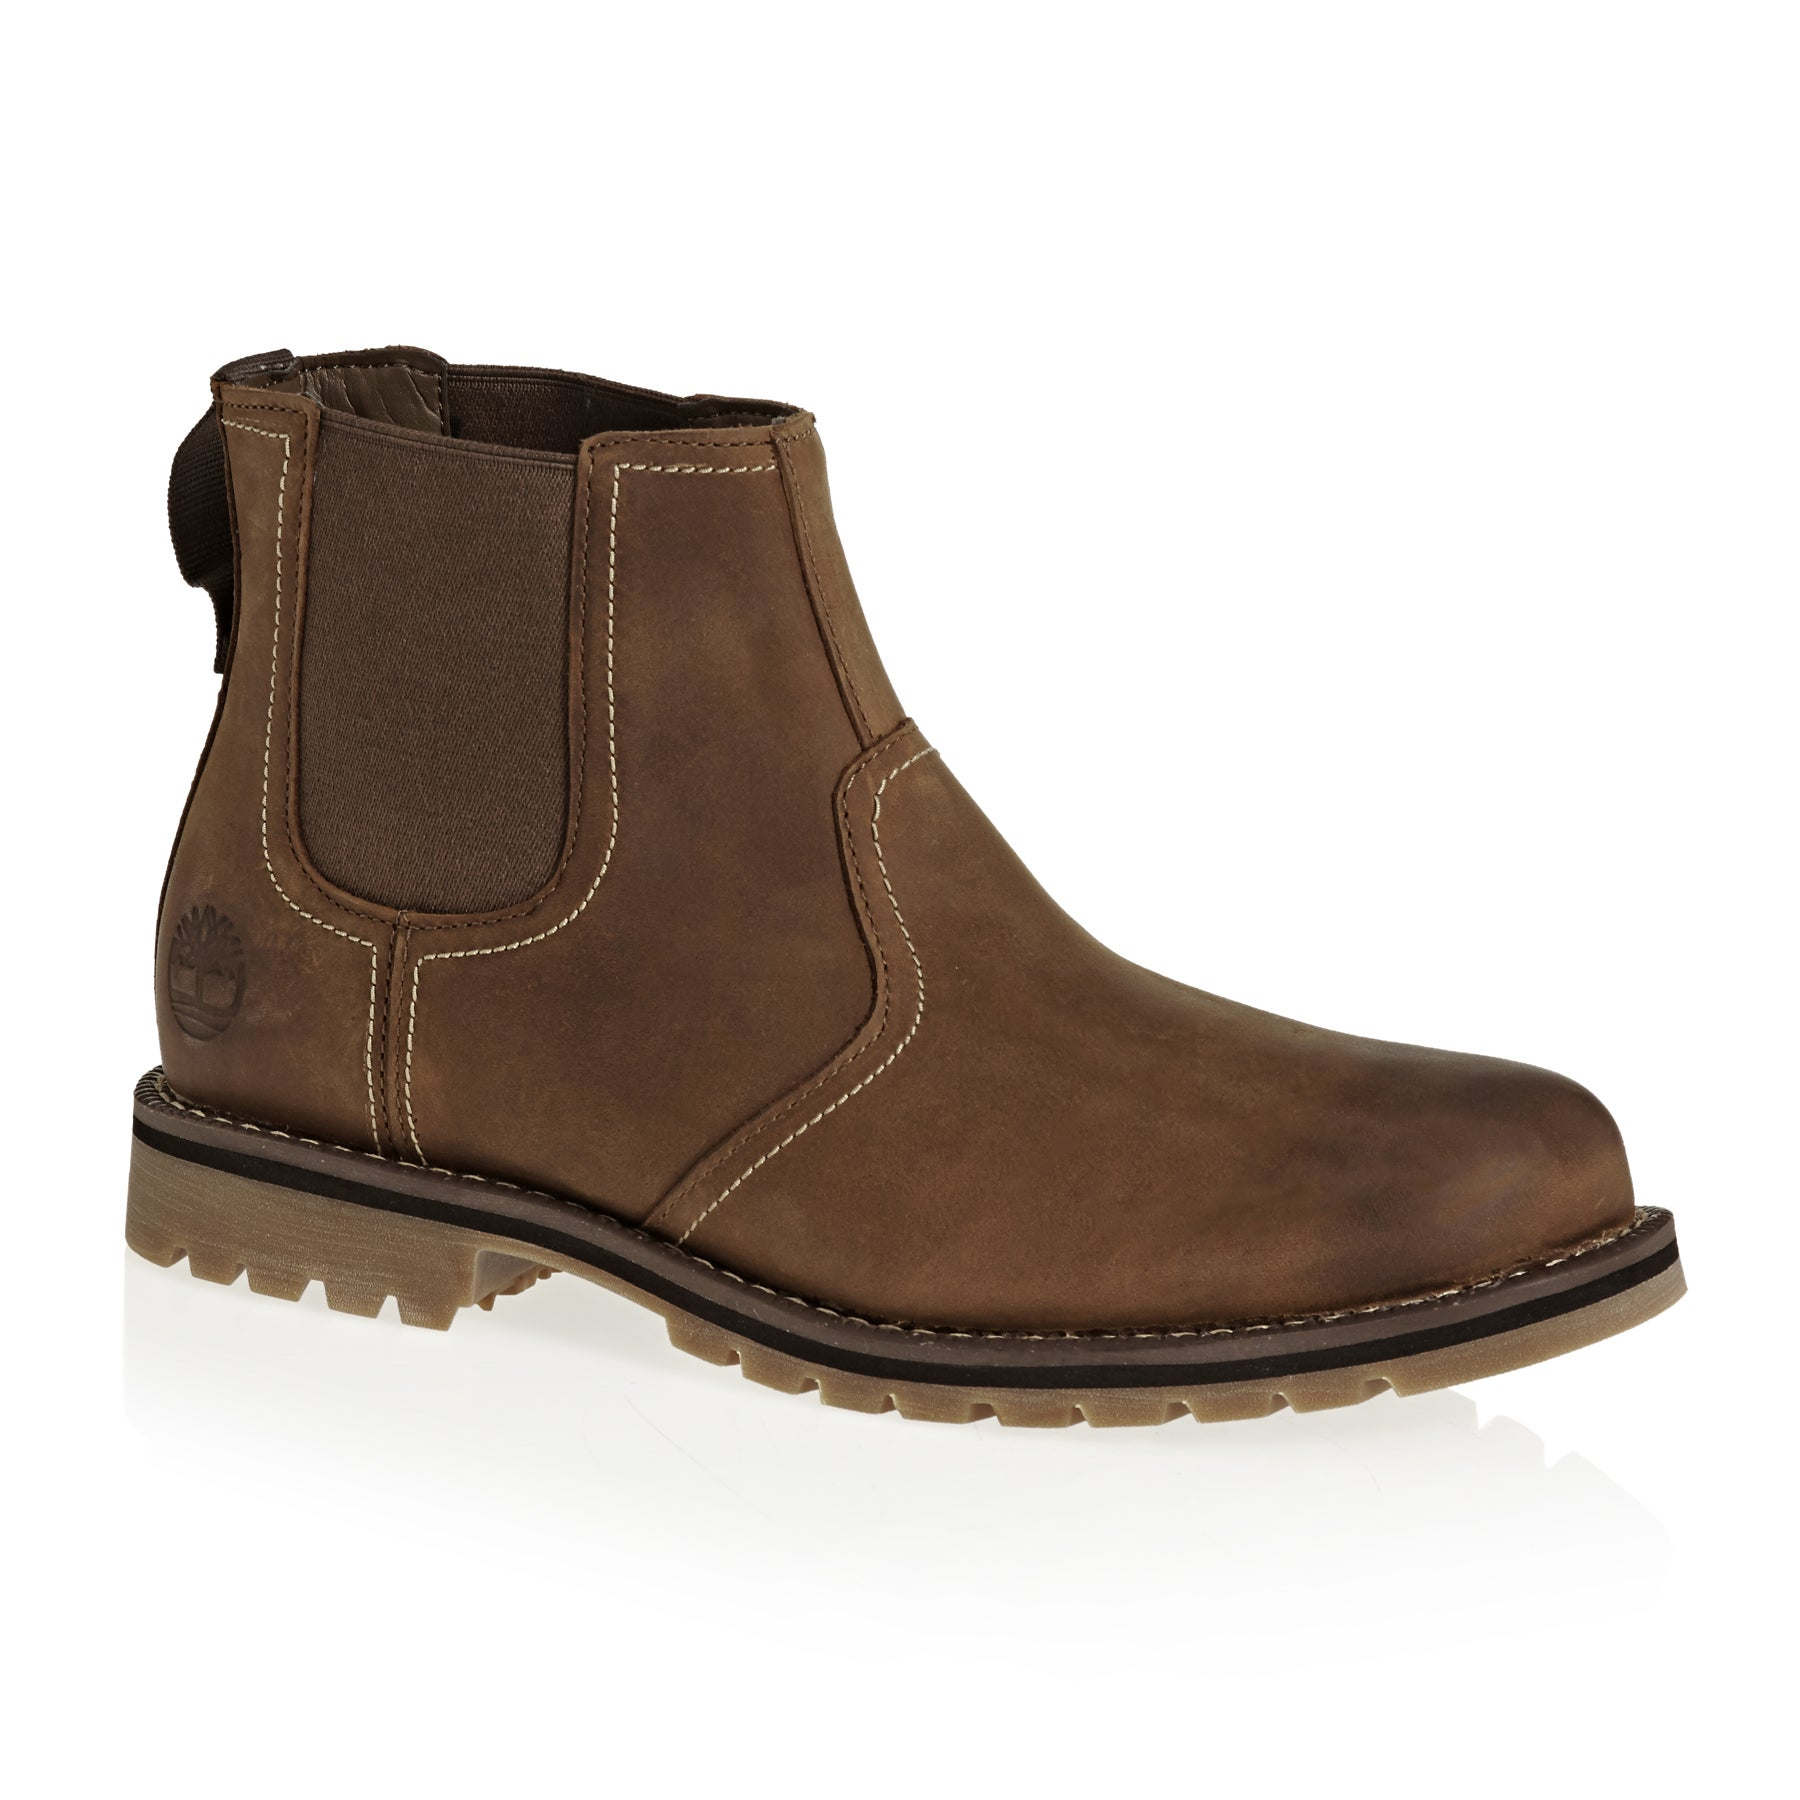 Timberland Larchmont Chelsea Mens Boots